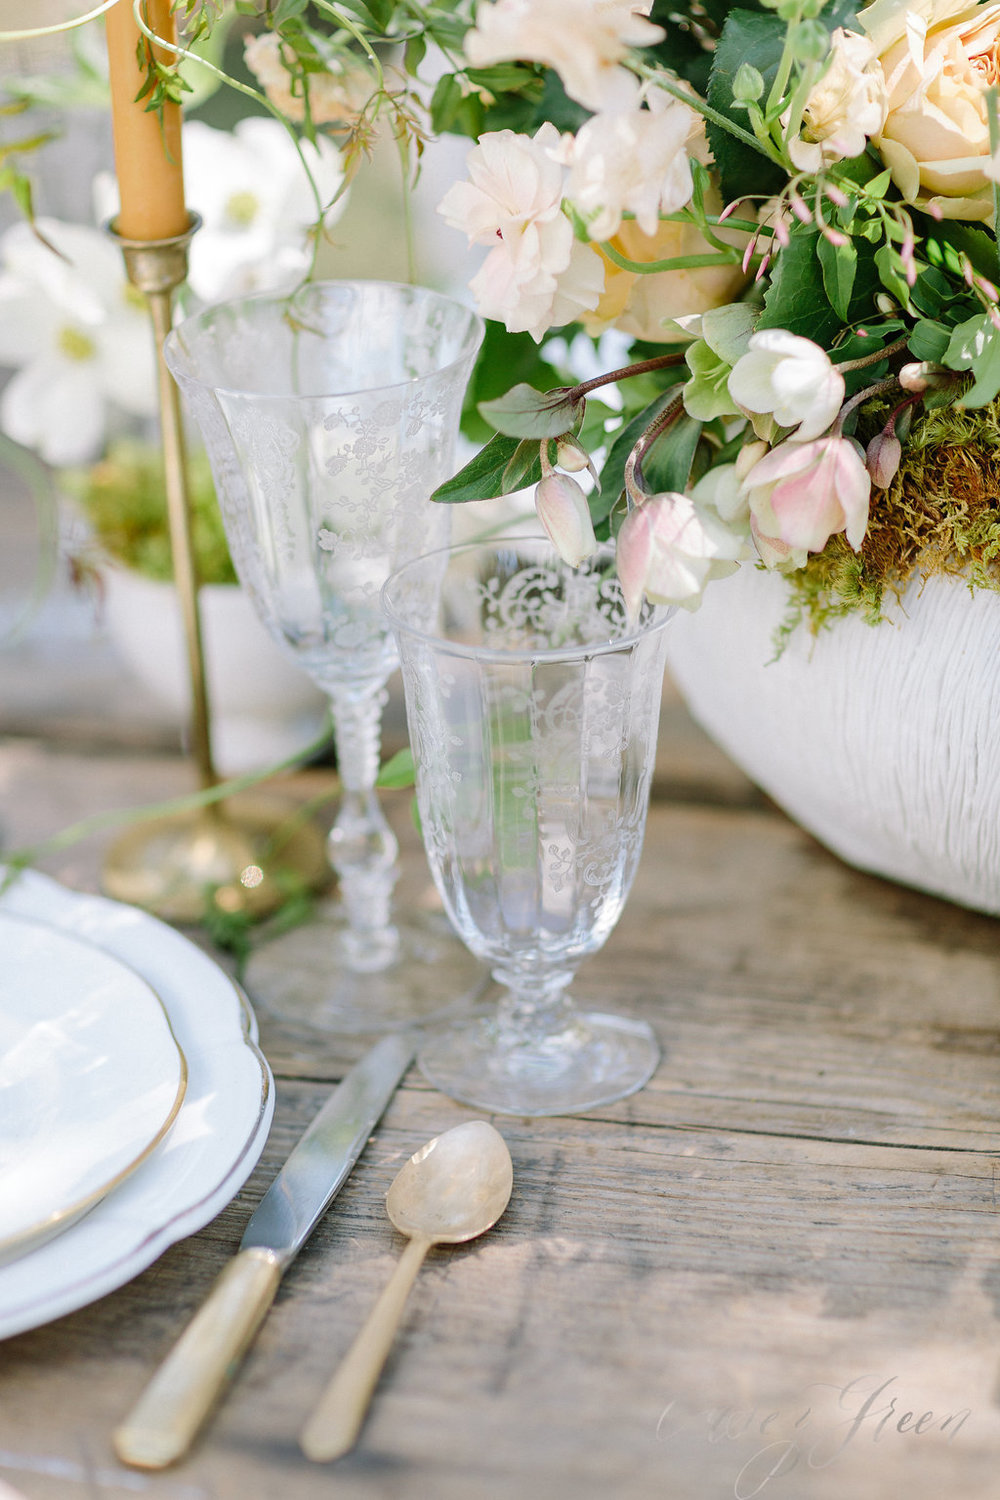 savannah-bridal-shop-ivory-and-beau-bridal-boutique-casey-green-photography-tybee-island-chapel-wedding-planning-mistakes-18.jpg